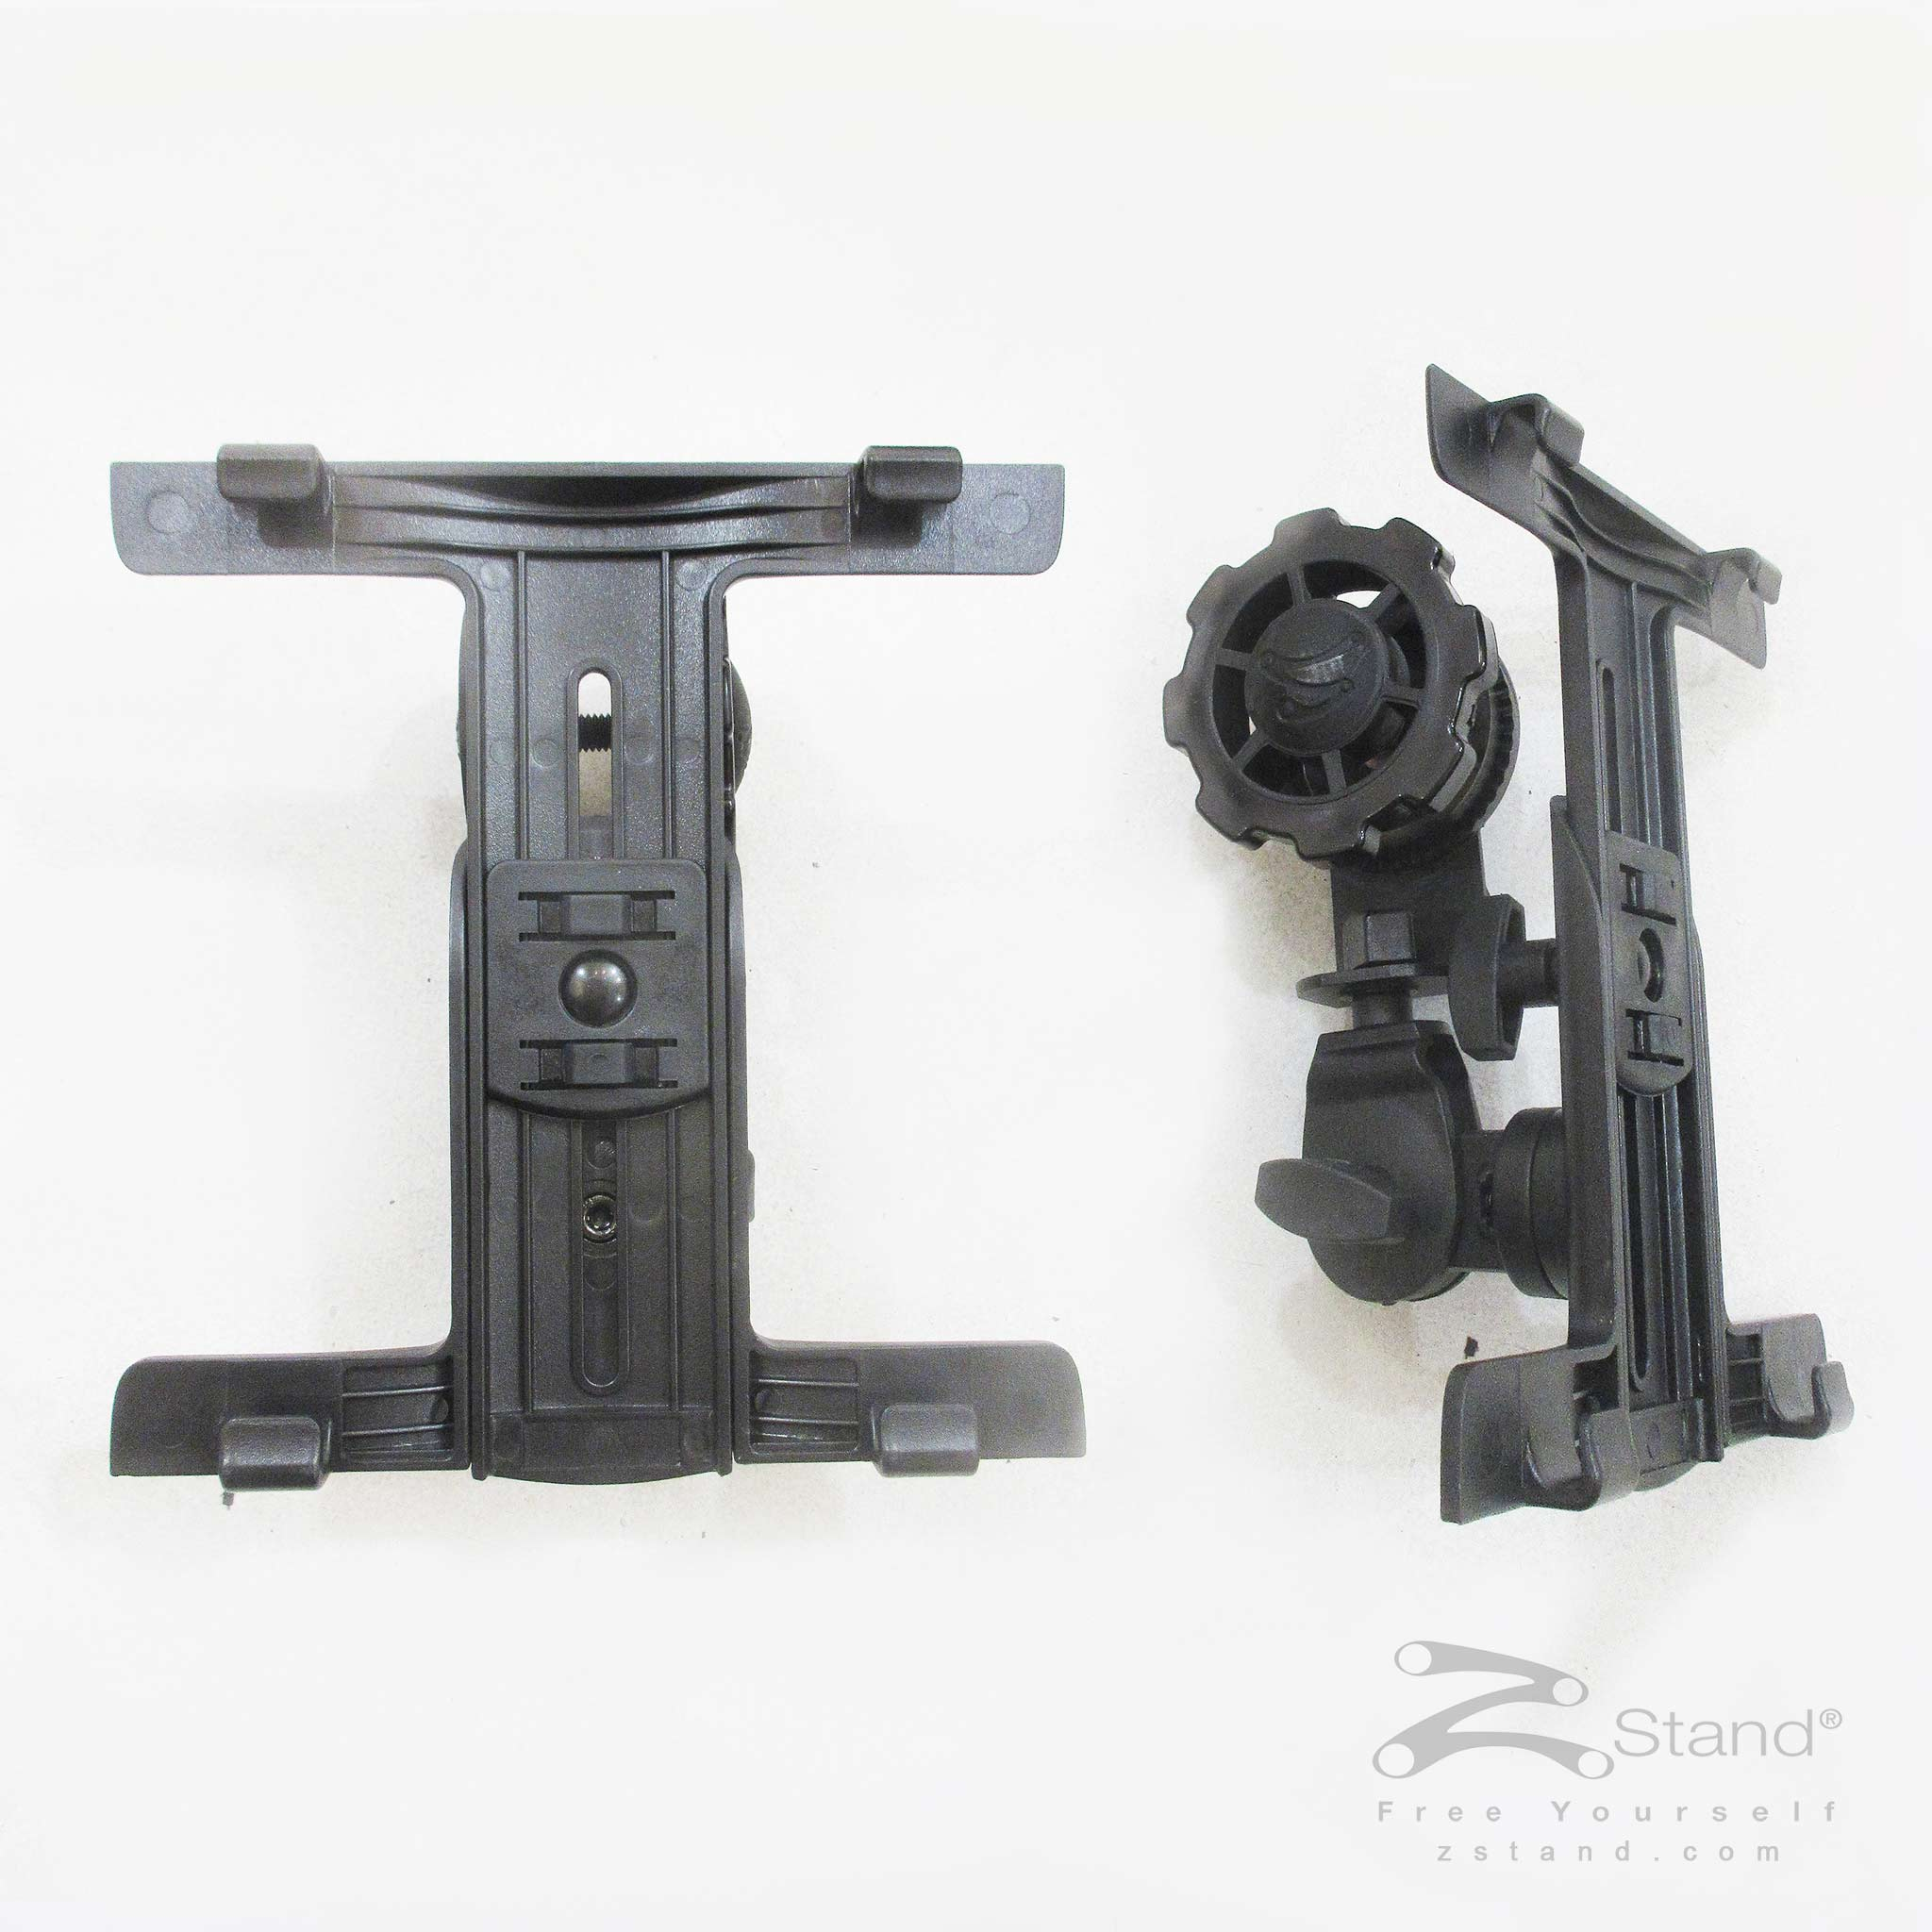 Image of the front and side of the ZStand AllStar's head assembly tablet device holder.